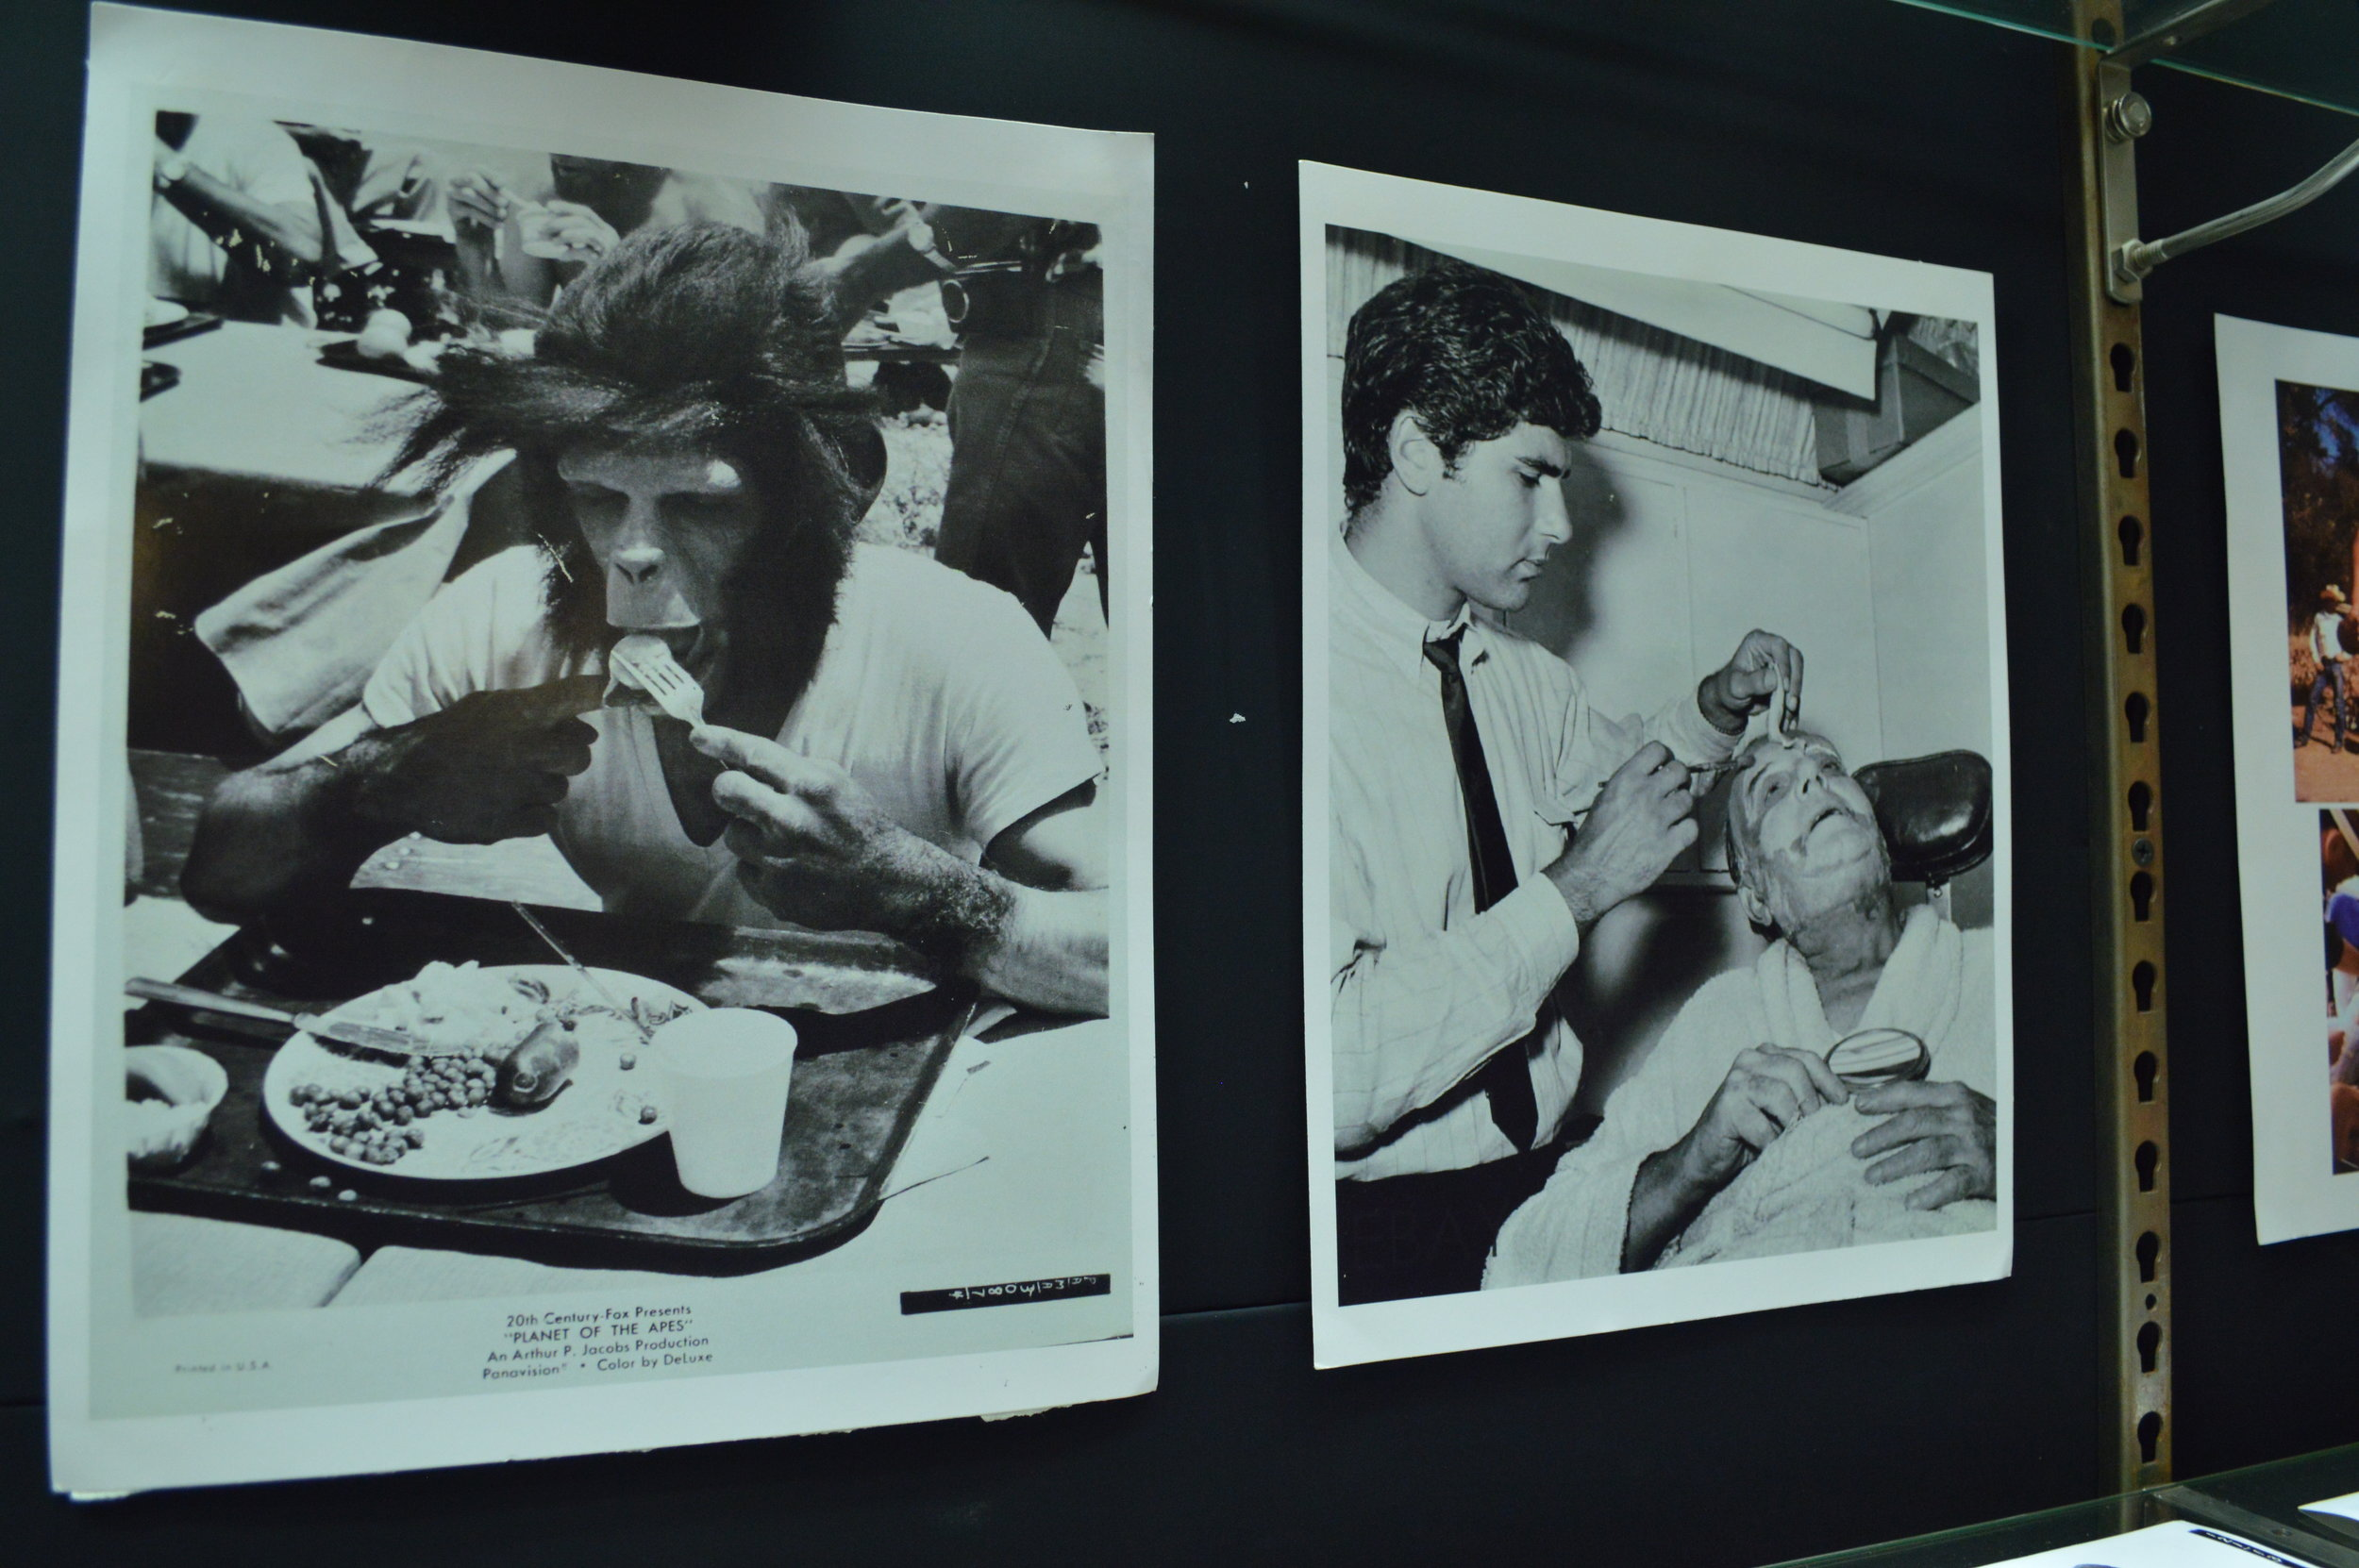 Rare behind the scenes photos on Planet of the Apes